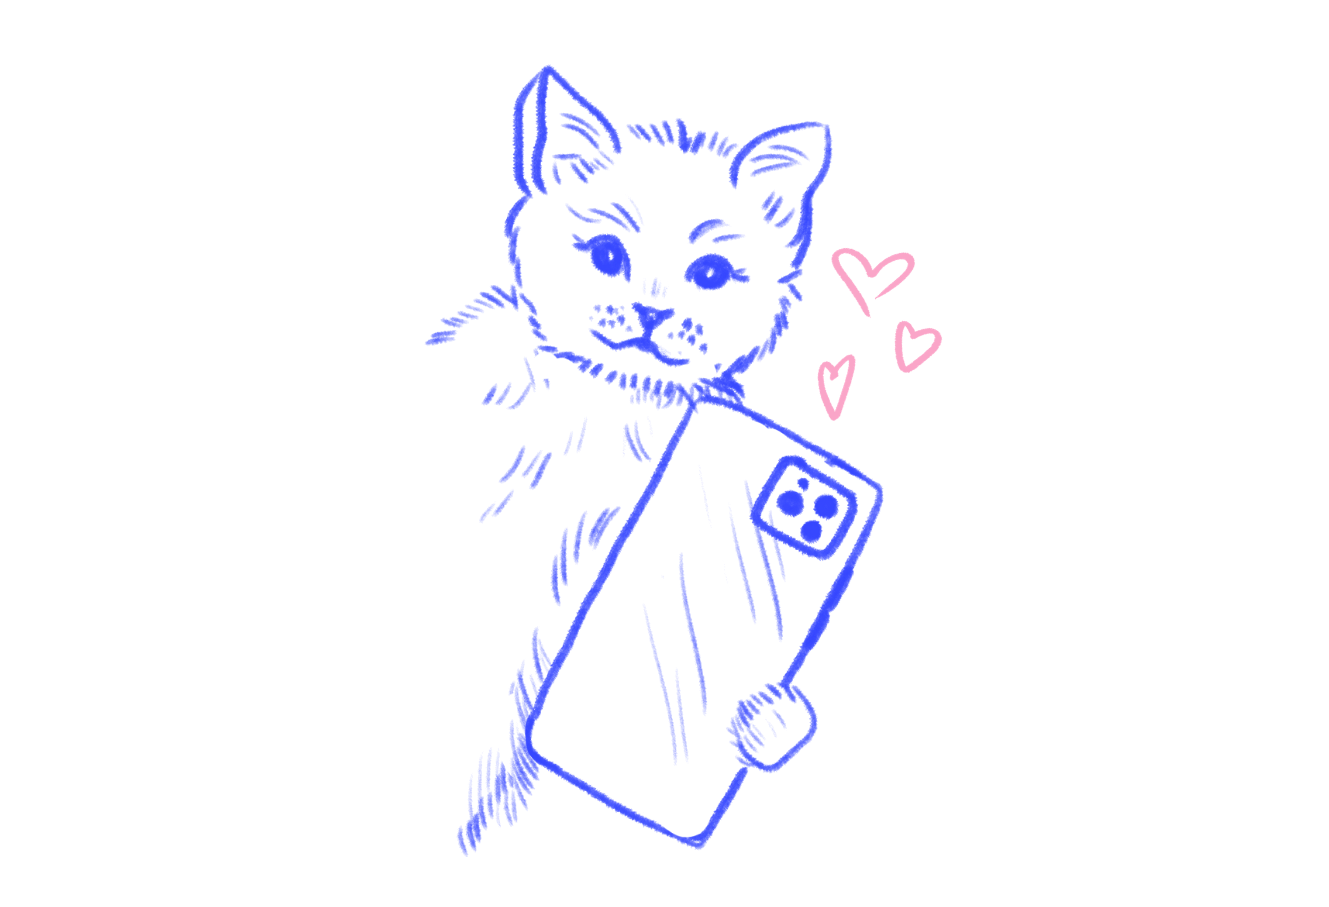 A sketch of a cat holding a phone, hearts blooming overhead